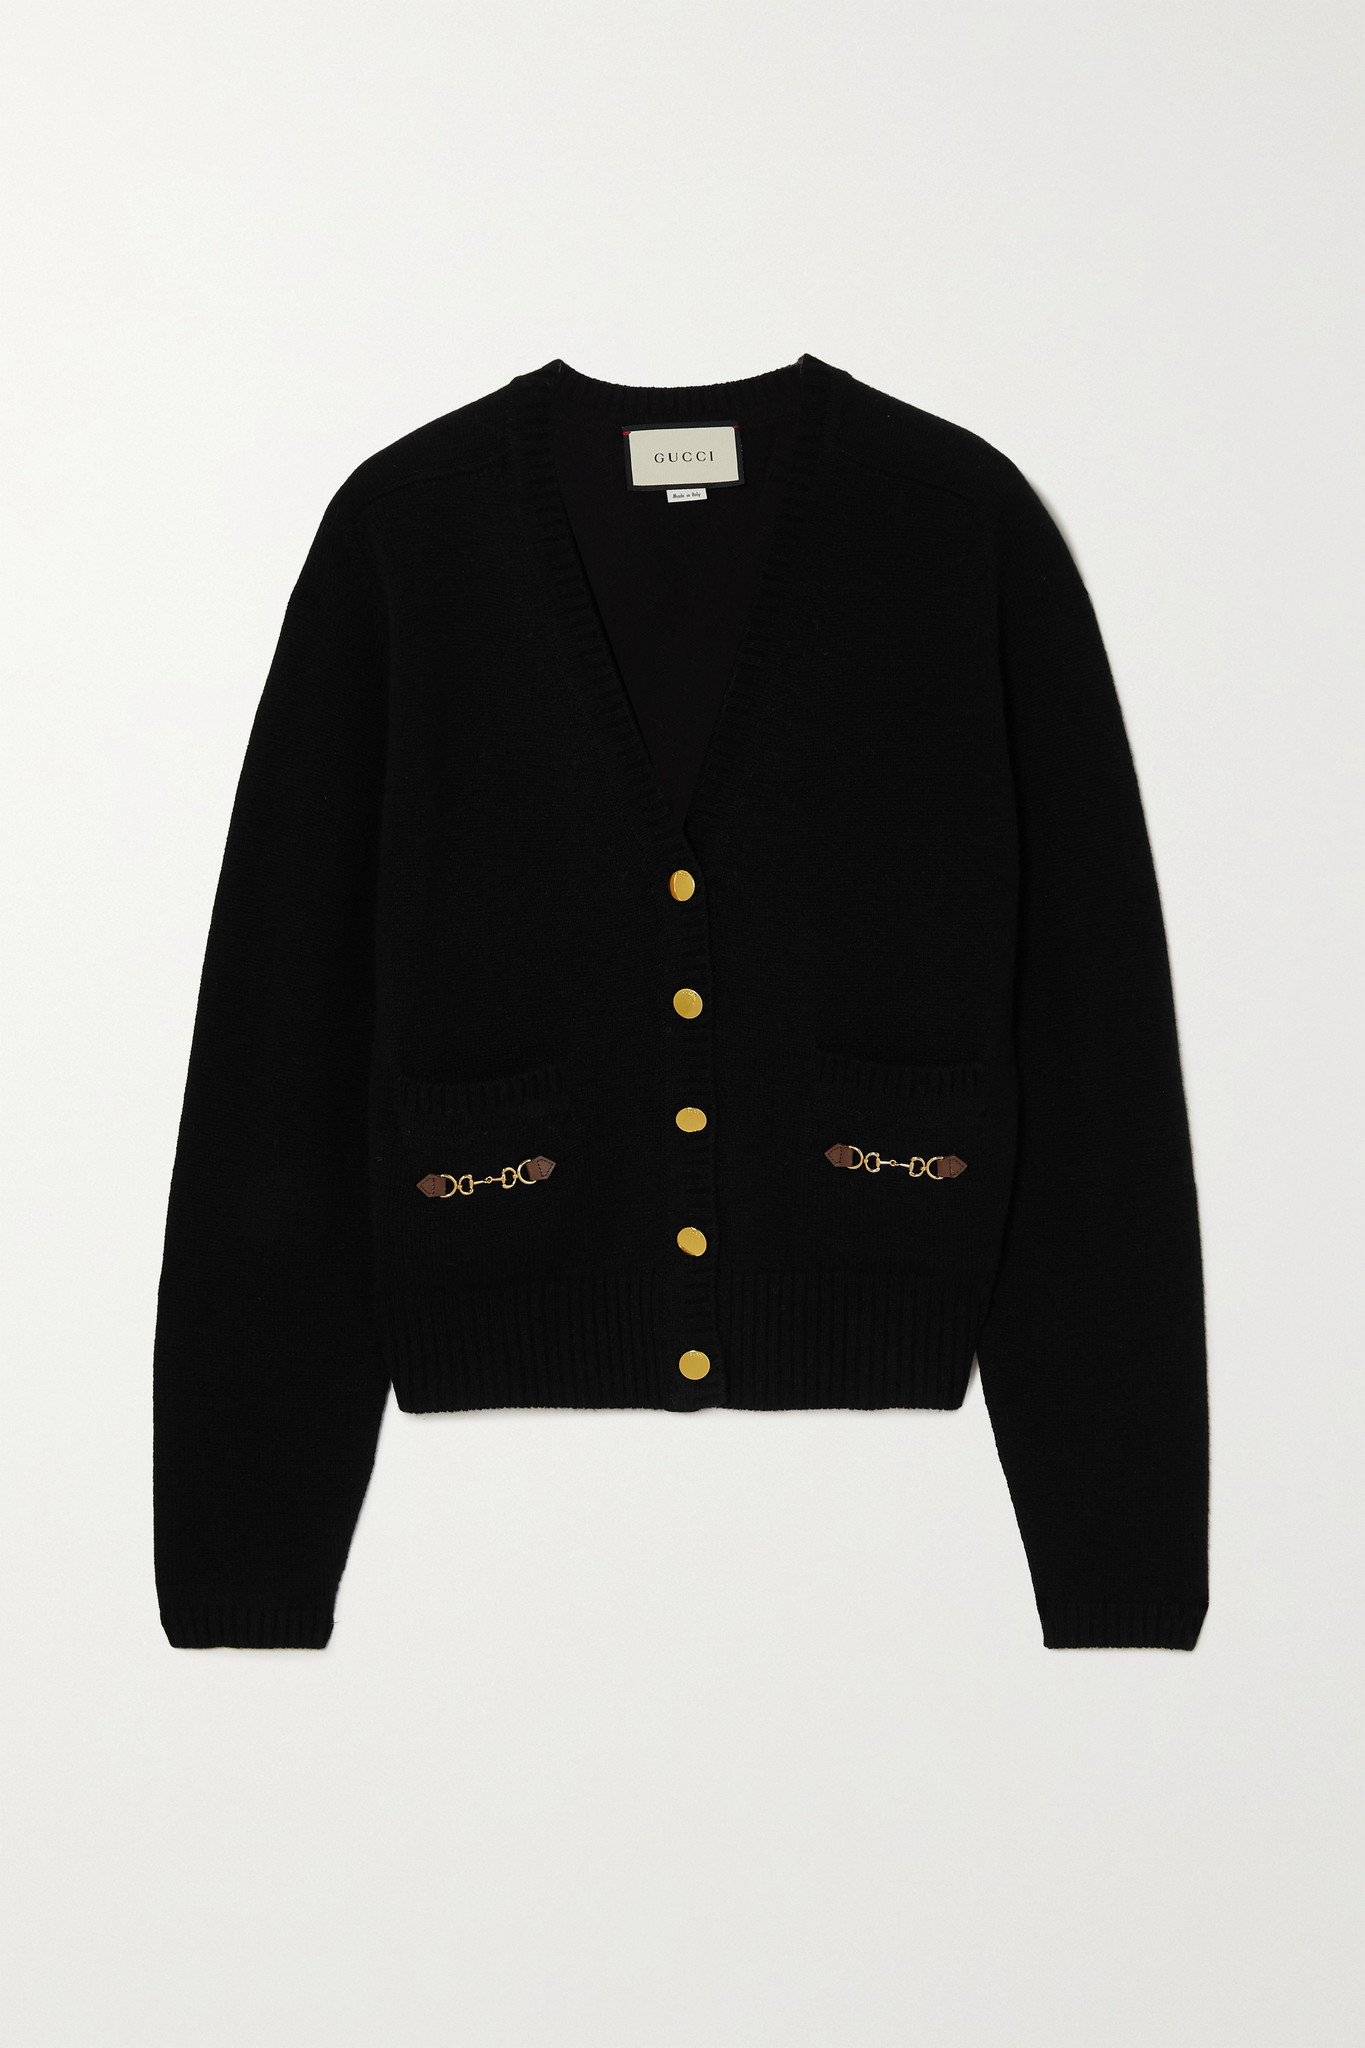 GUCCI - Horsebit-detailed Leather-trimmed Cashmere Cardigan - Black - xx small